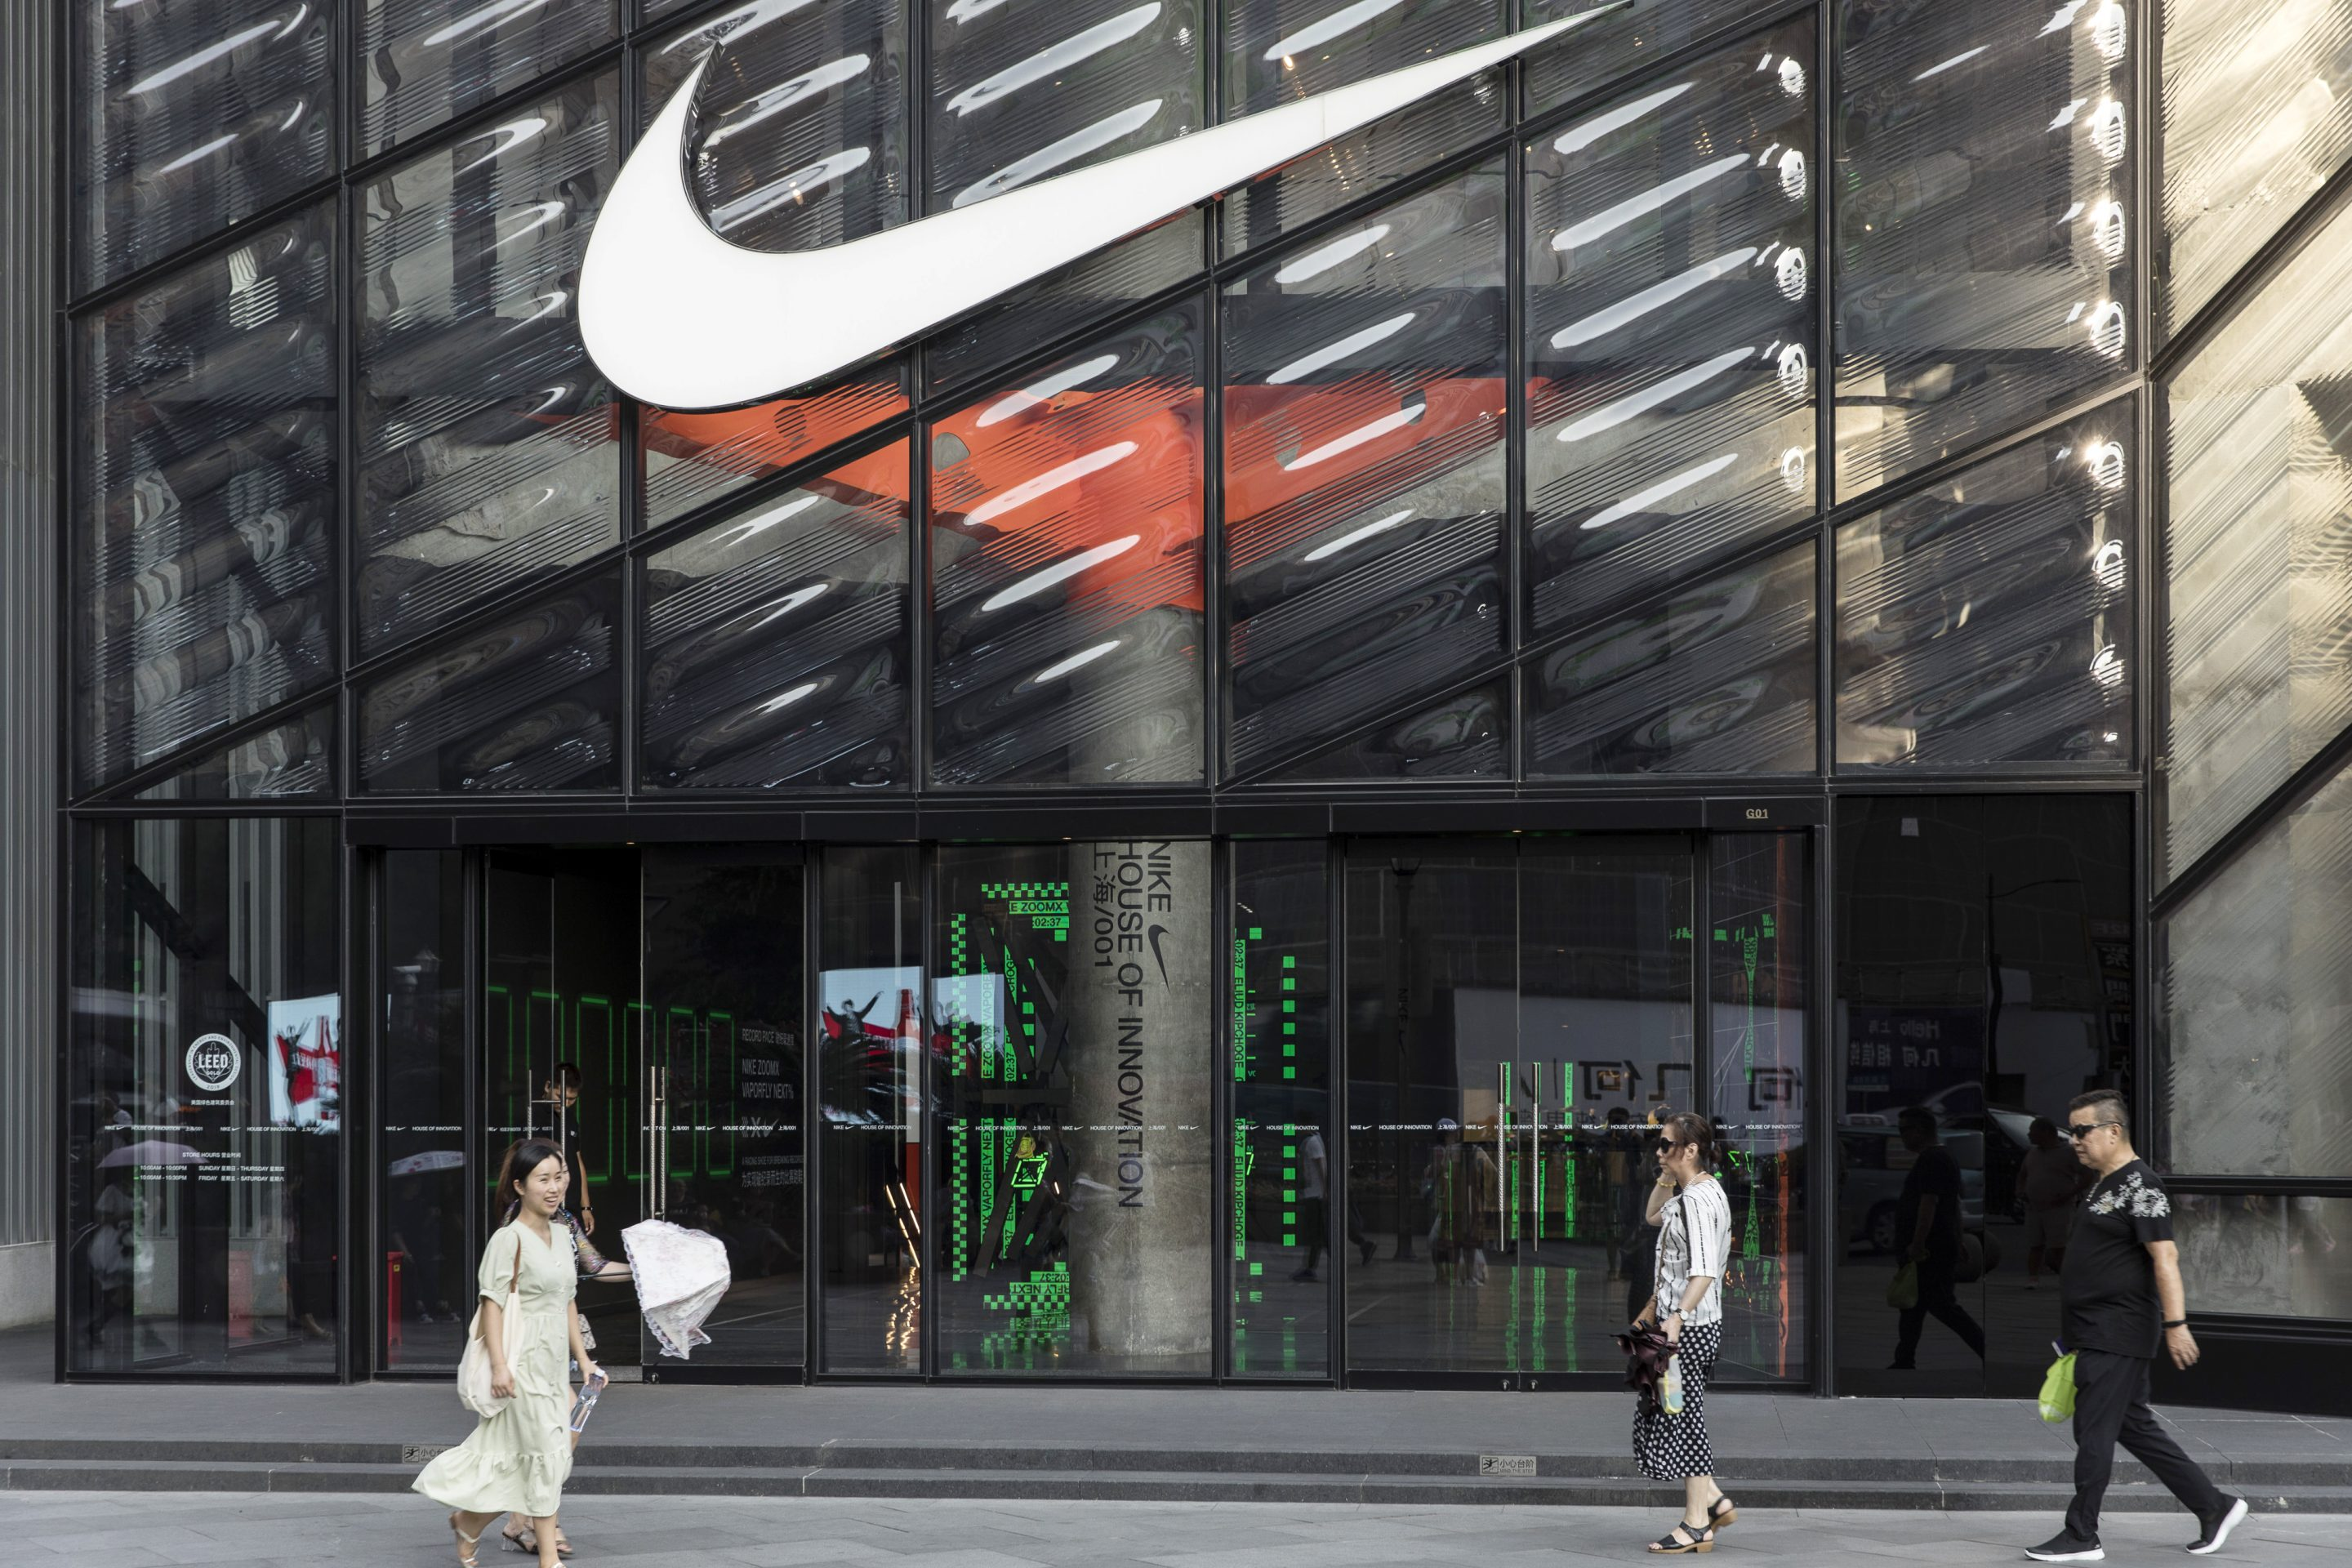 diario rosario izquierda  How Nike Plans to Boost Sales While Shedding Retail Partners | Fortune